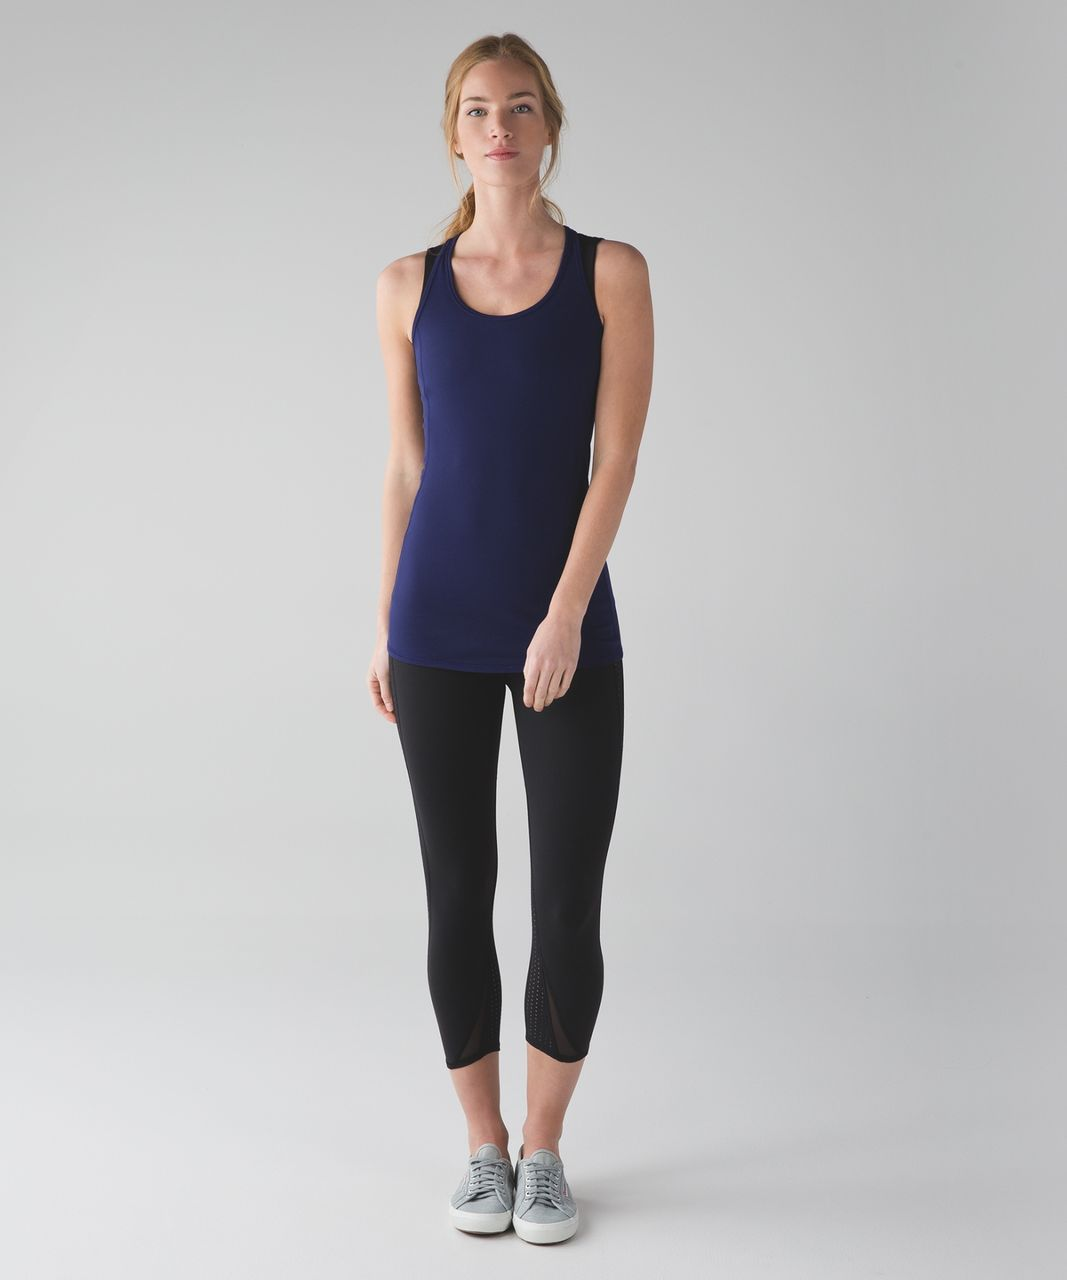 Lululemon Cool Racerback Exhale - Hero Blue